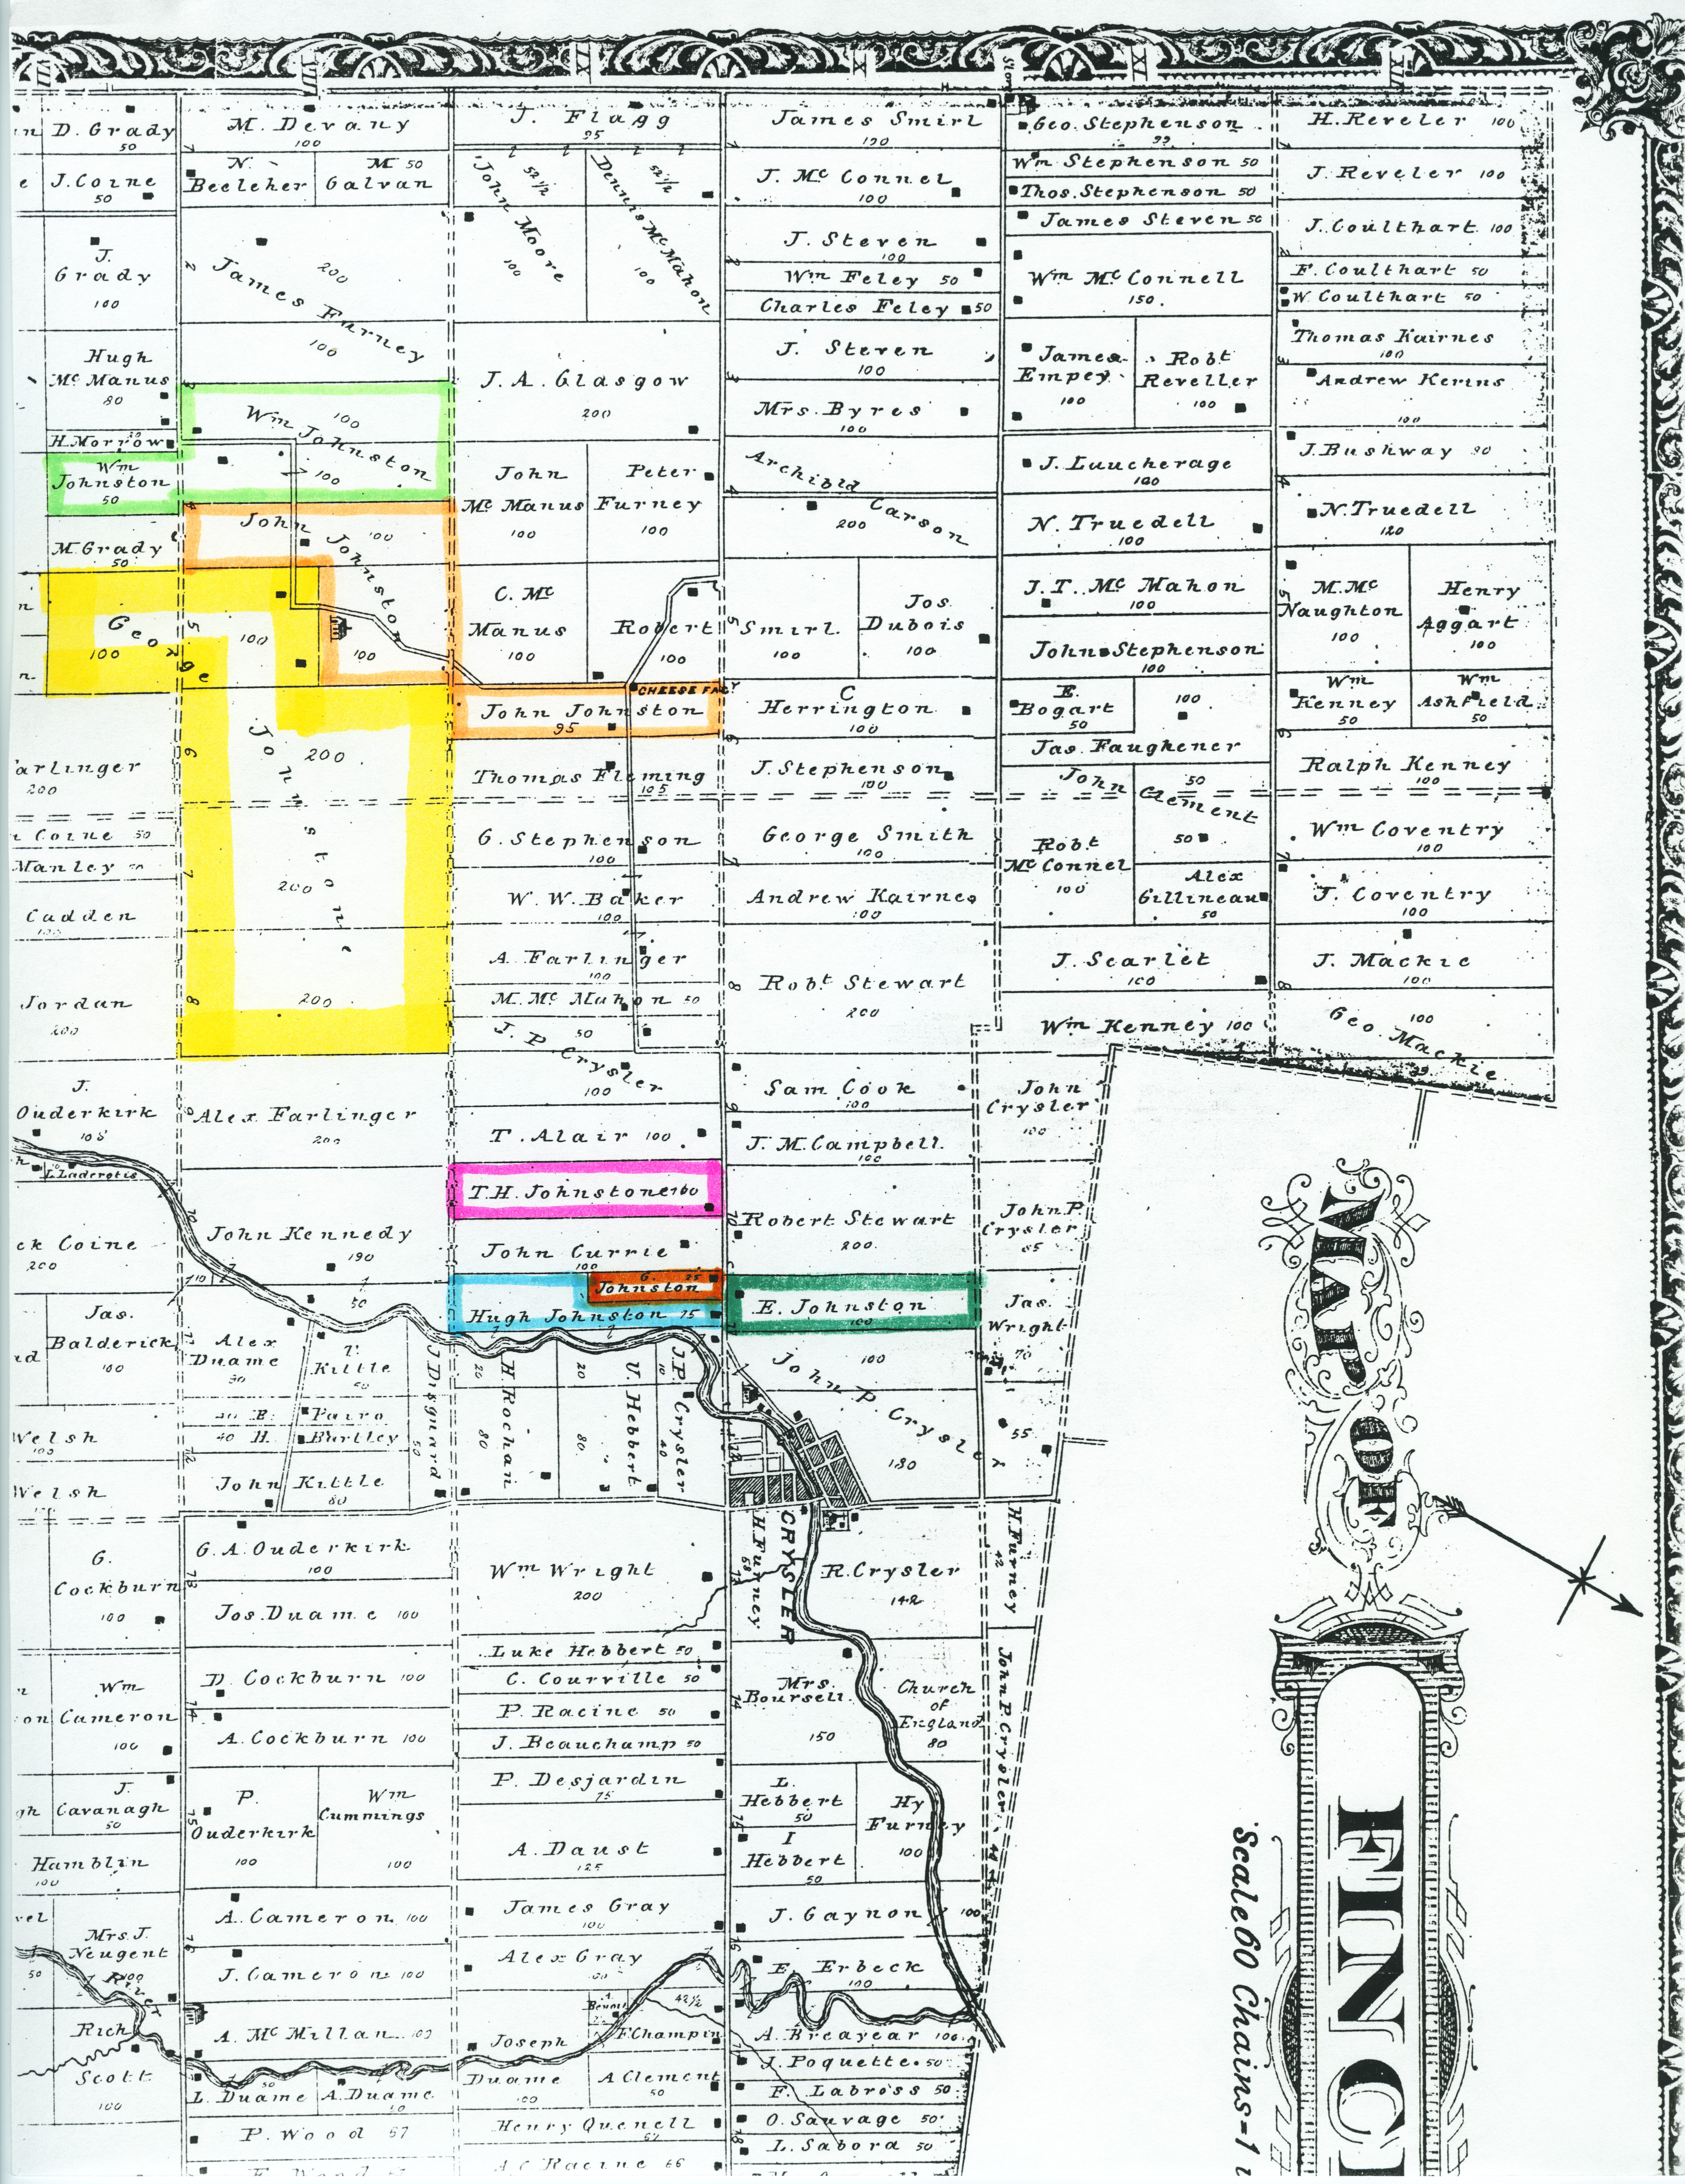 Map - Stormont County, Finch Twp., Crysler Area Johnston/e Farms